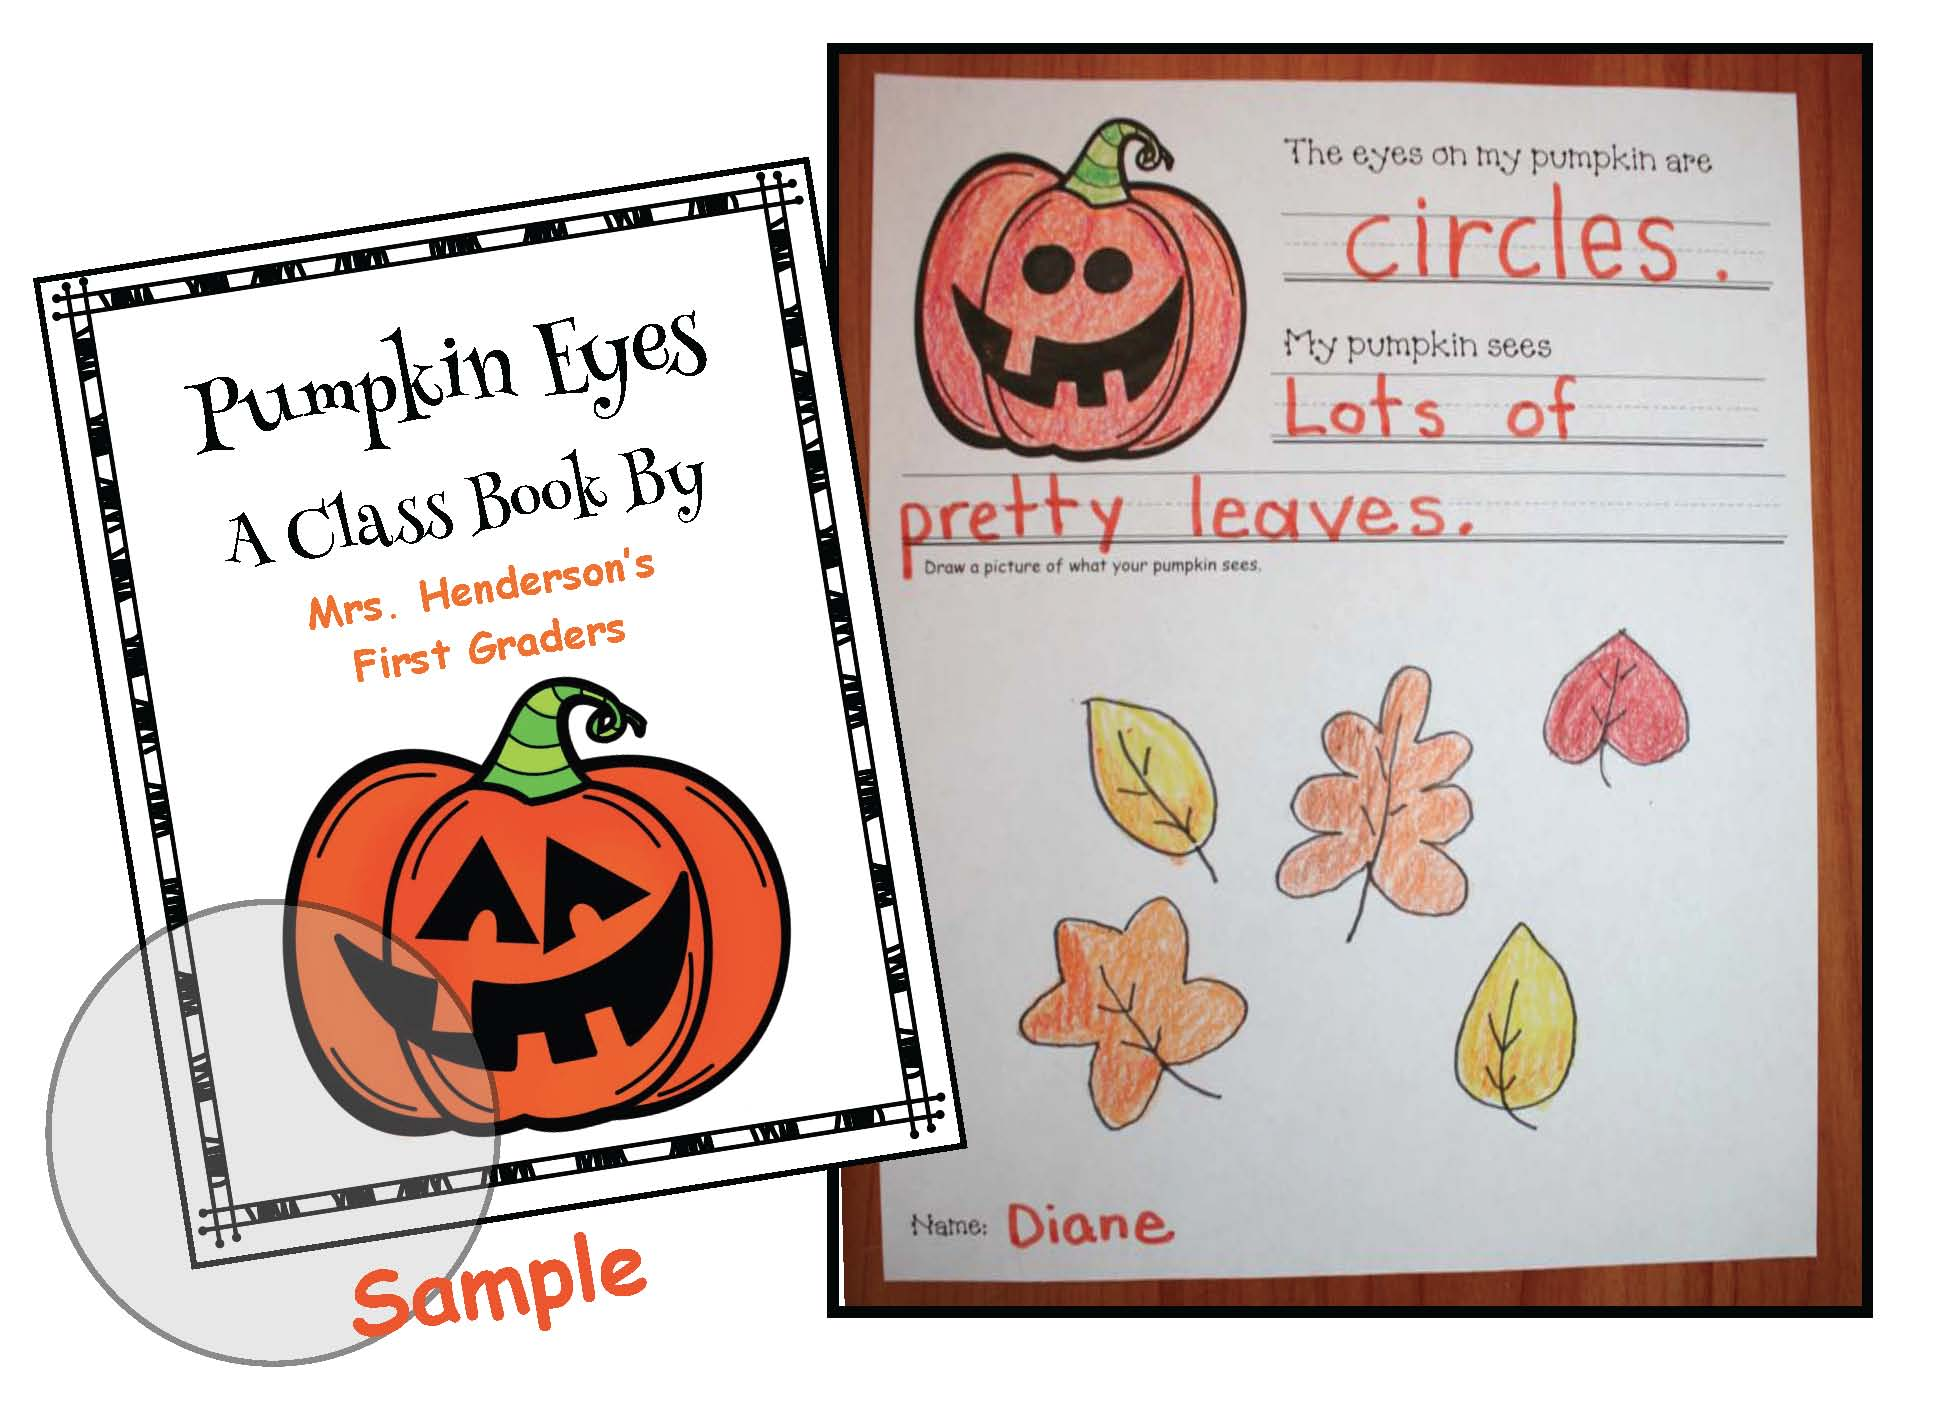 pumpkin activities, pumpkin crafts, emergent readers, class made book, october bulletin board ideas, writing prompts for october, pumpkin games, 2D shape activities, 2D shape games, assessing 2D shapes, 2D shape crafts